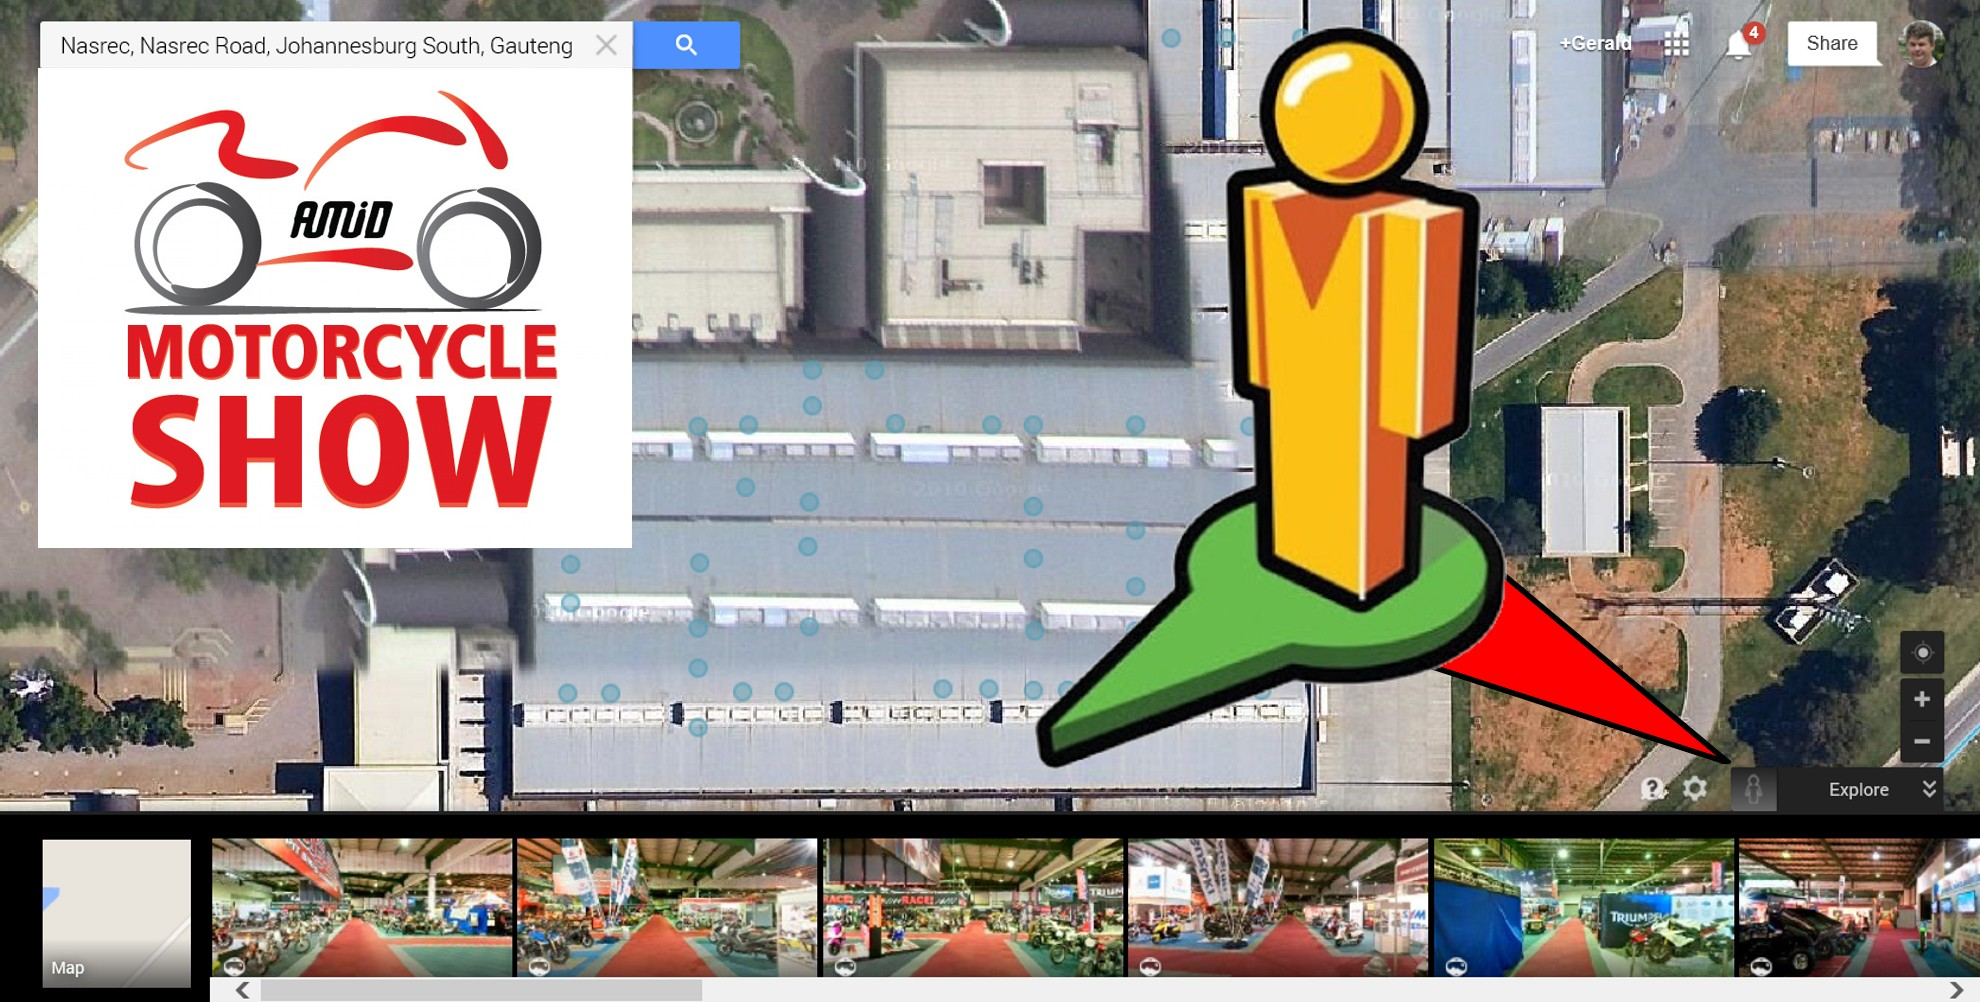 Google_Maps_Amid_Motorcycle_Show_Virtual_Tour